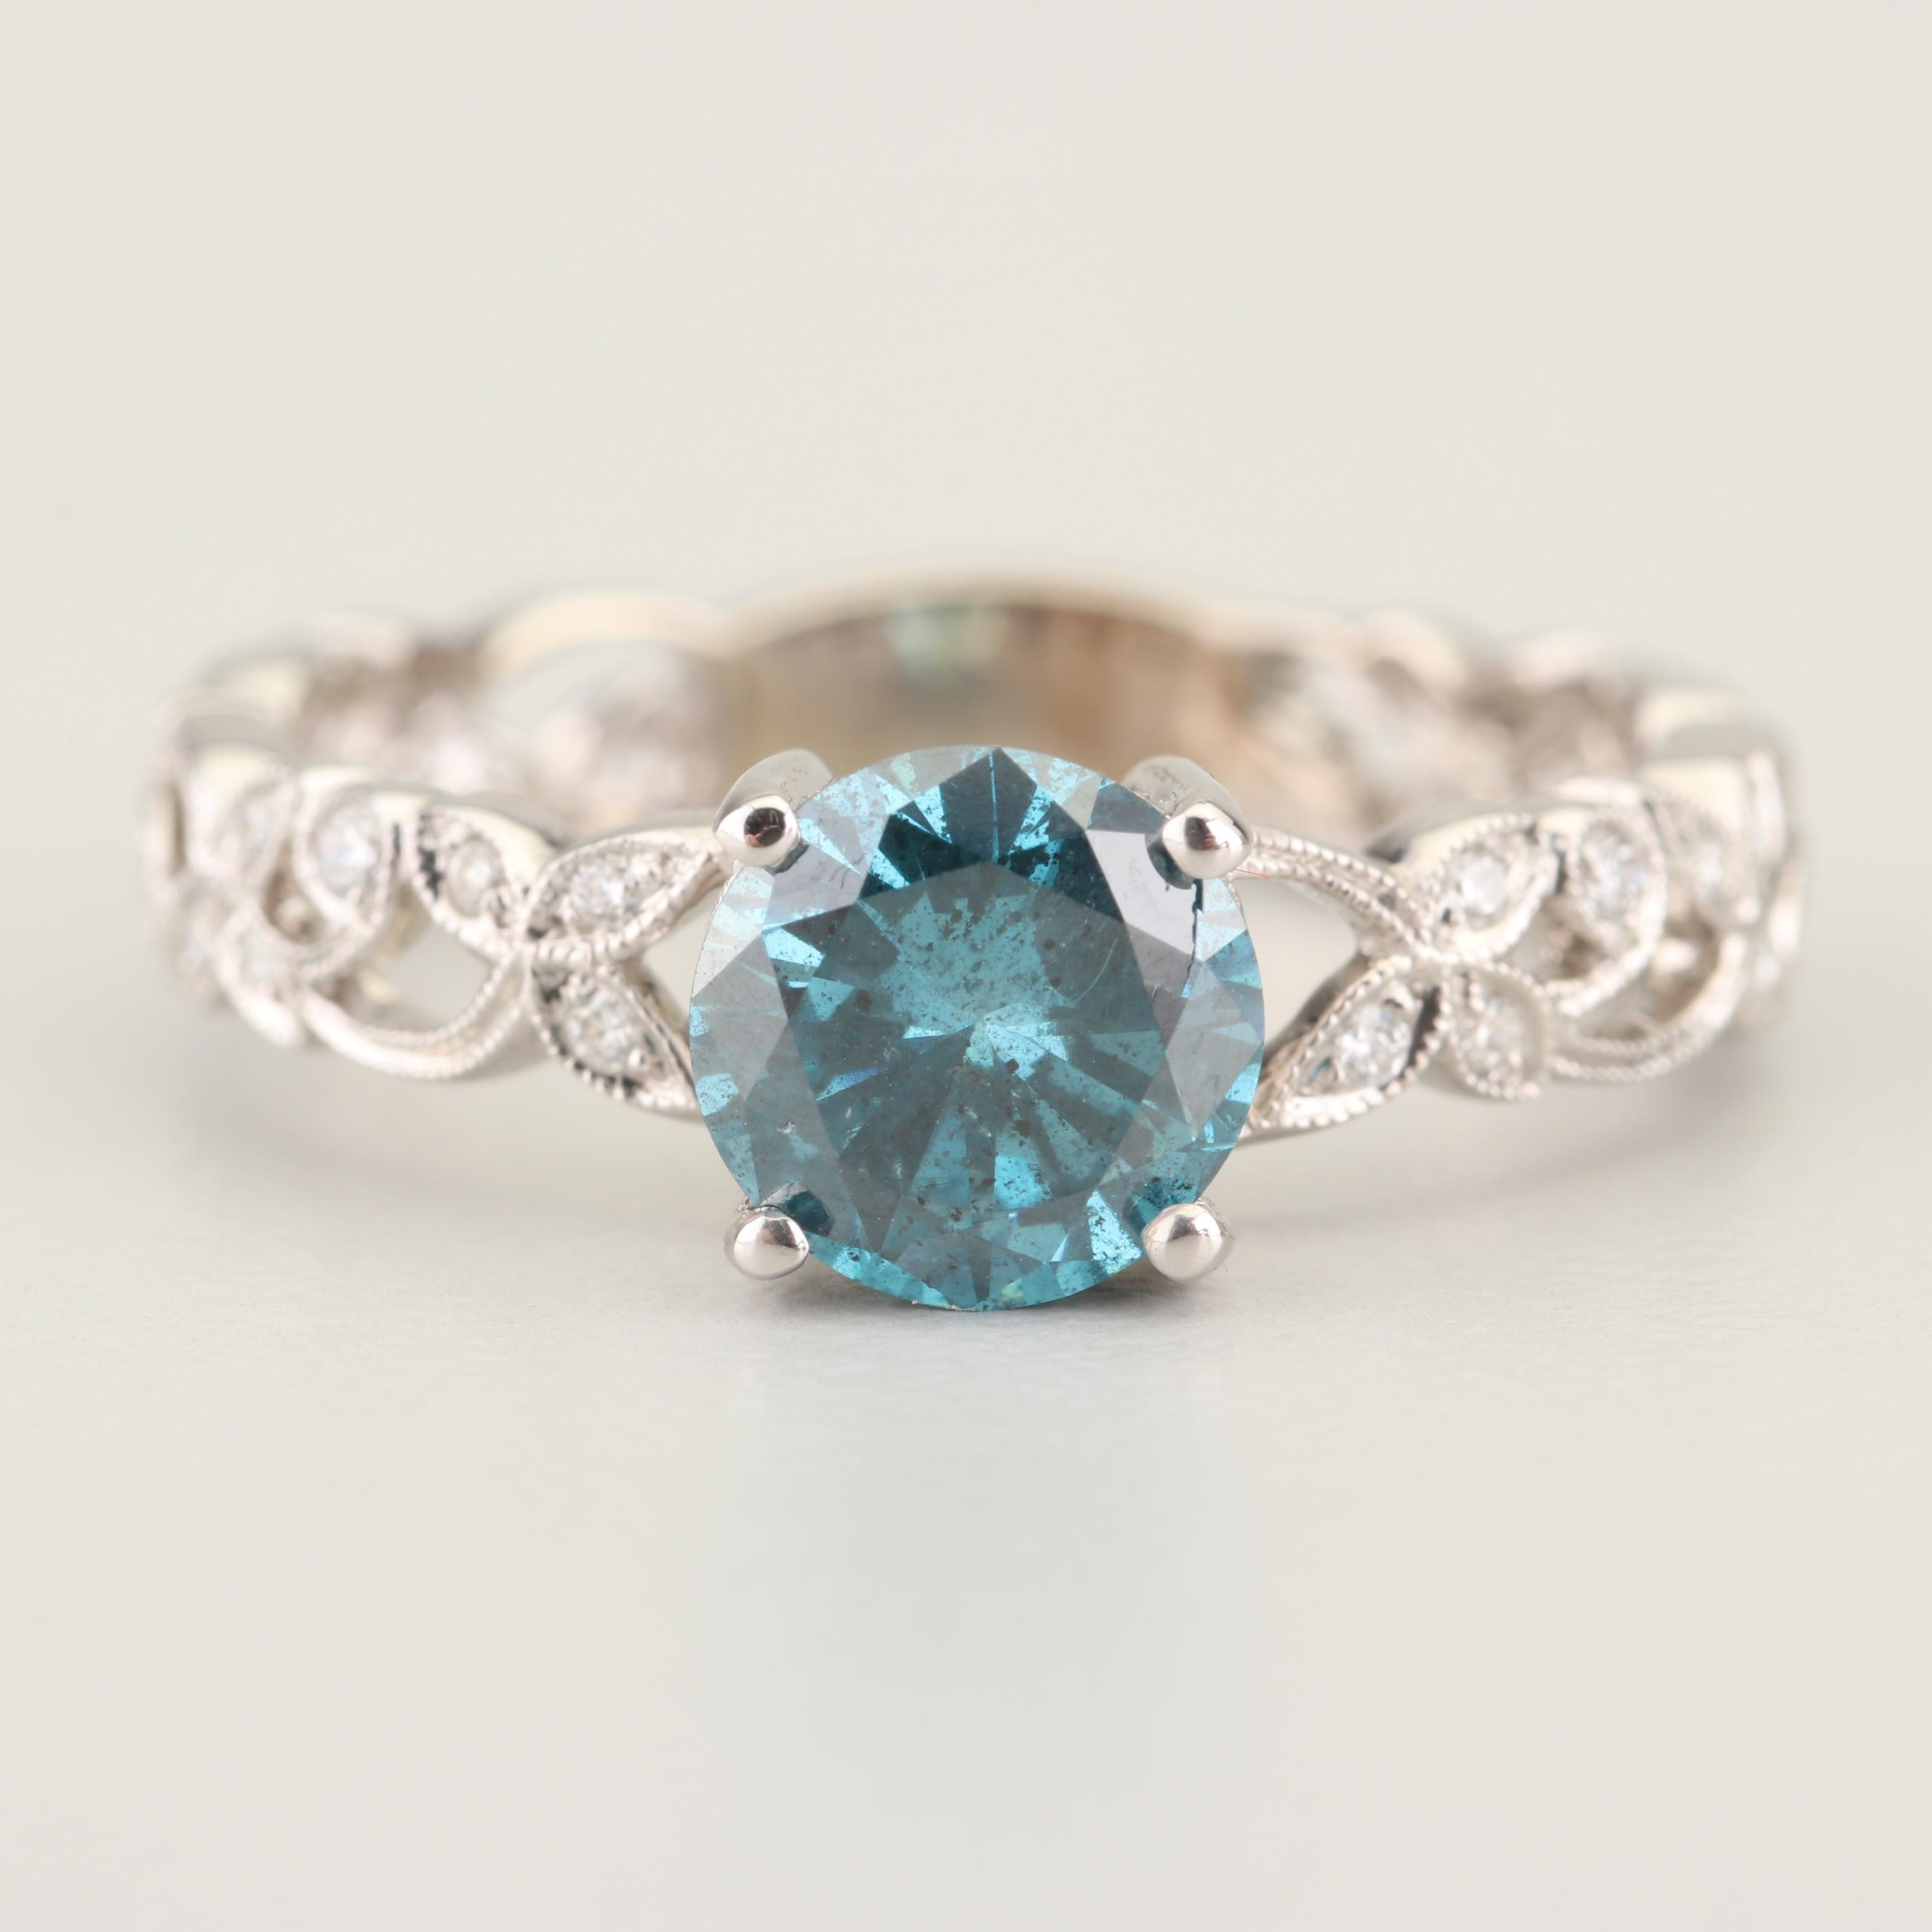 14K White Gold 1.05 CT Blue Diamond and Diamond Ring